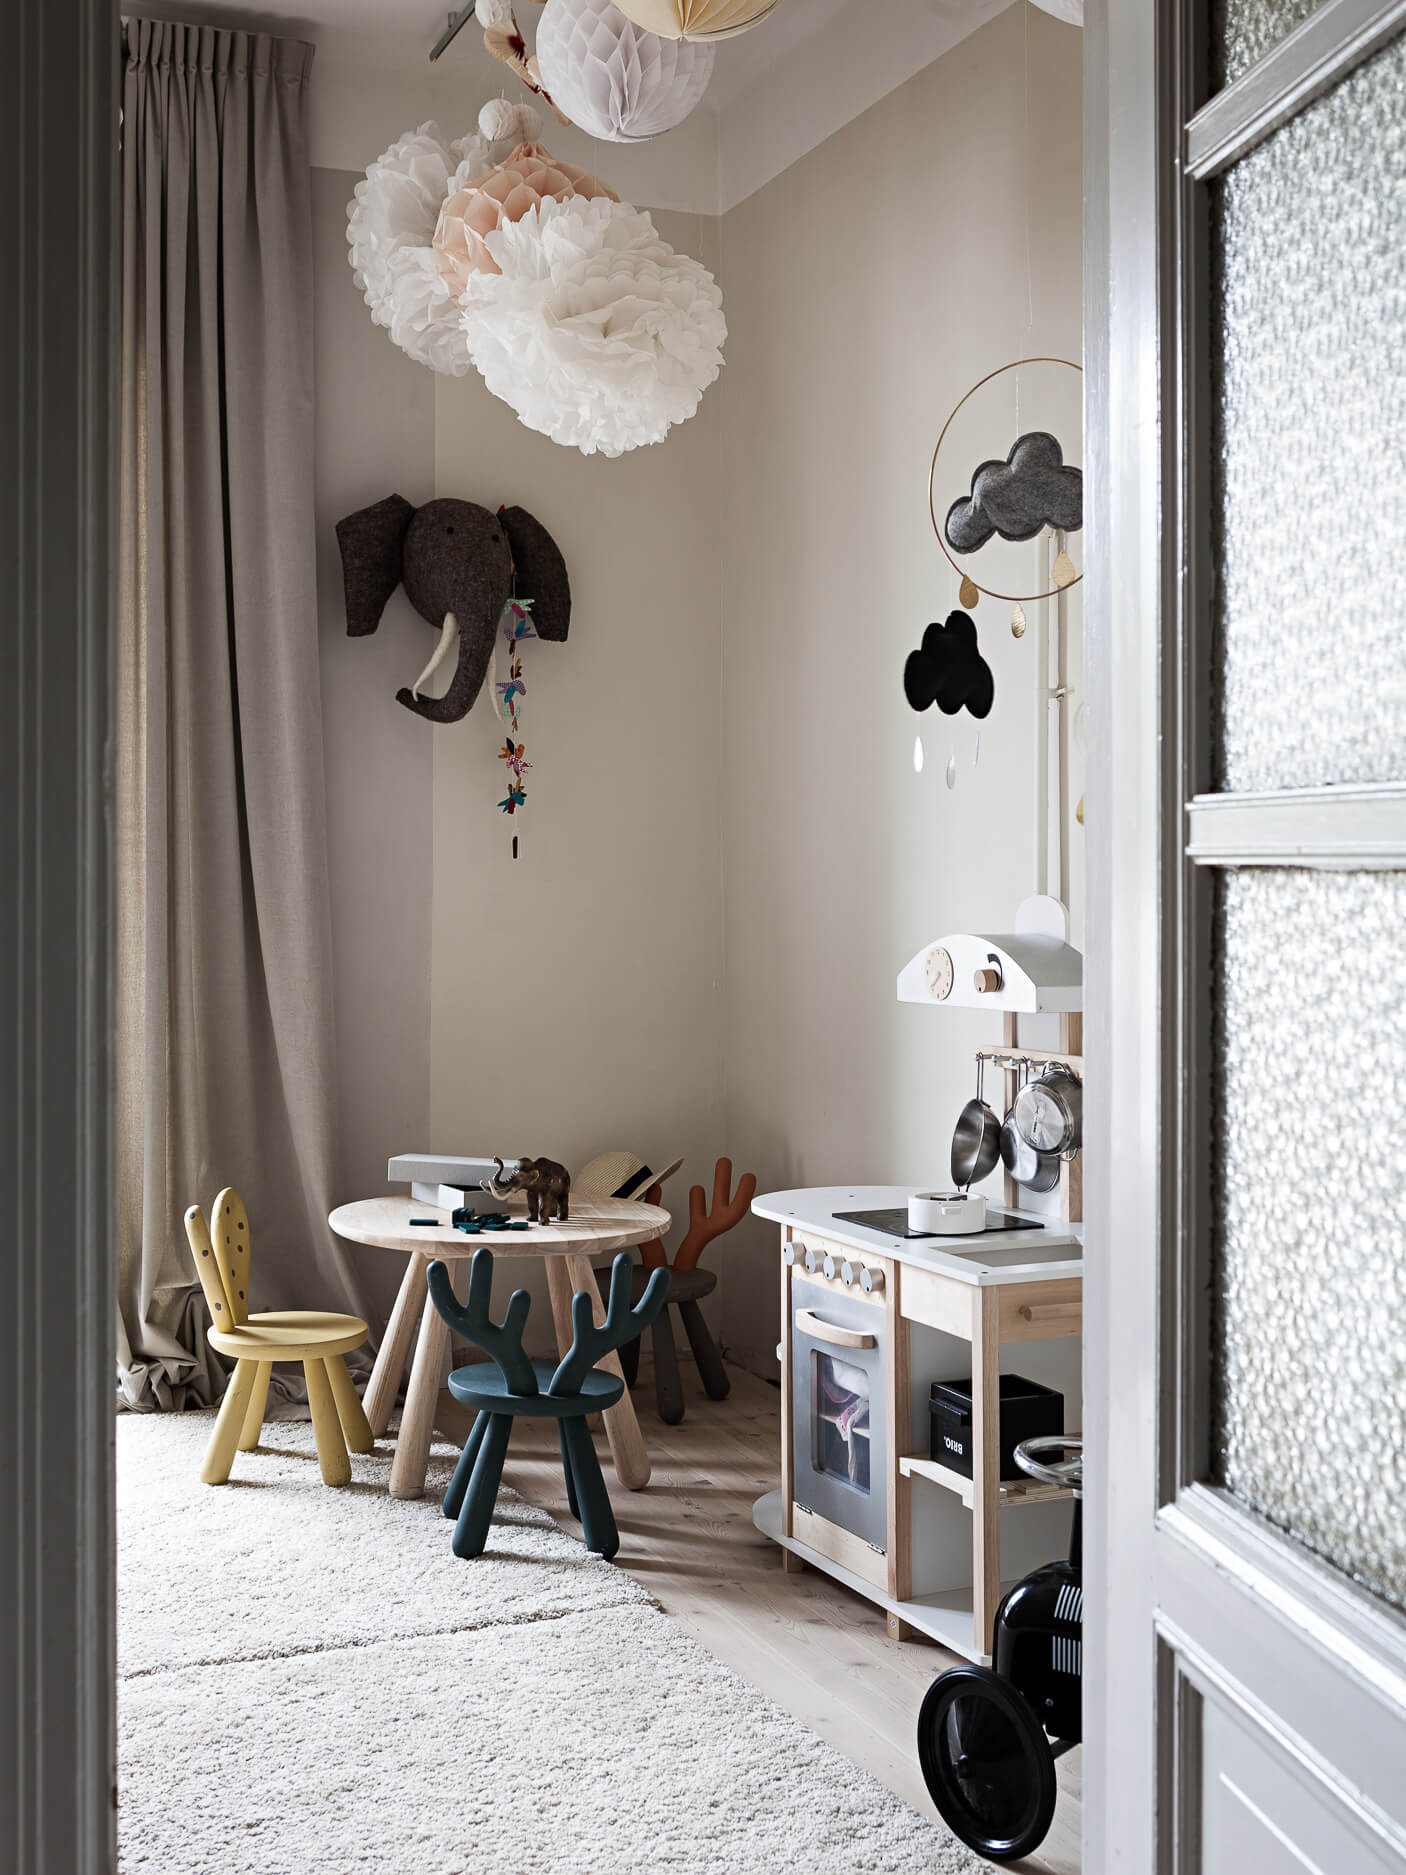 PAUL & PAULA: a delightful family home in Sweden